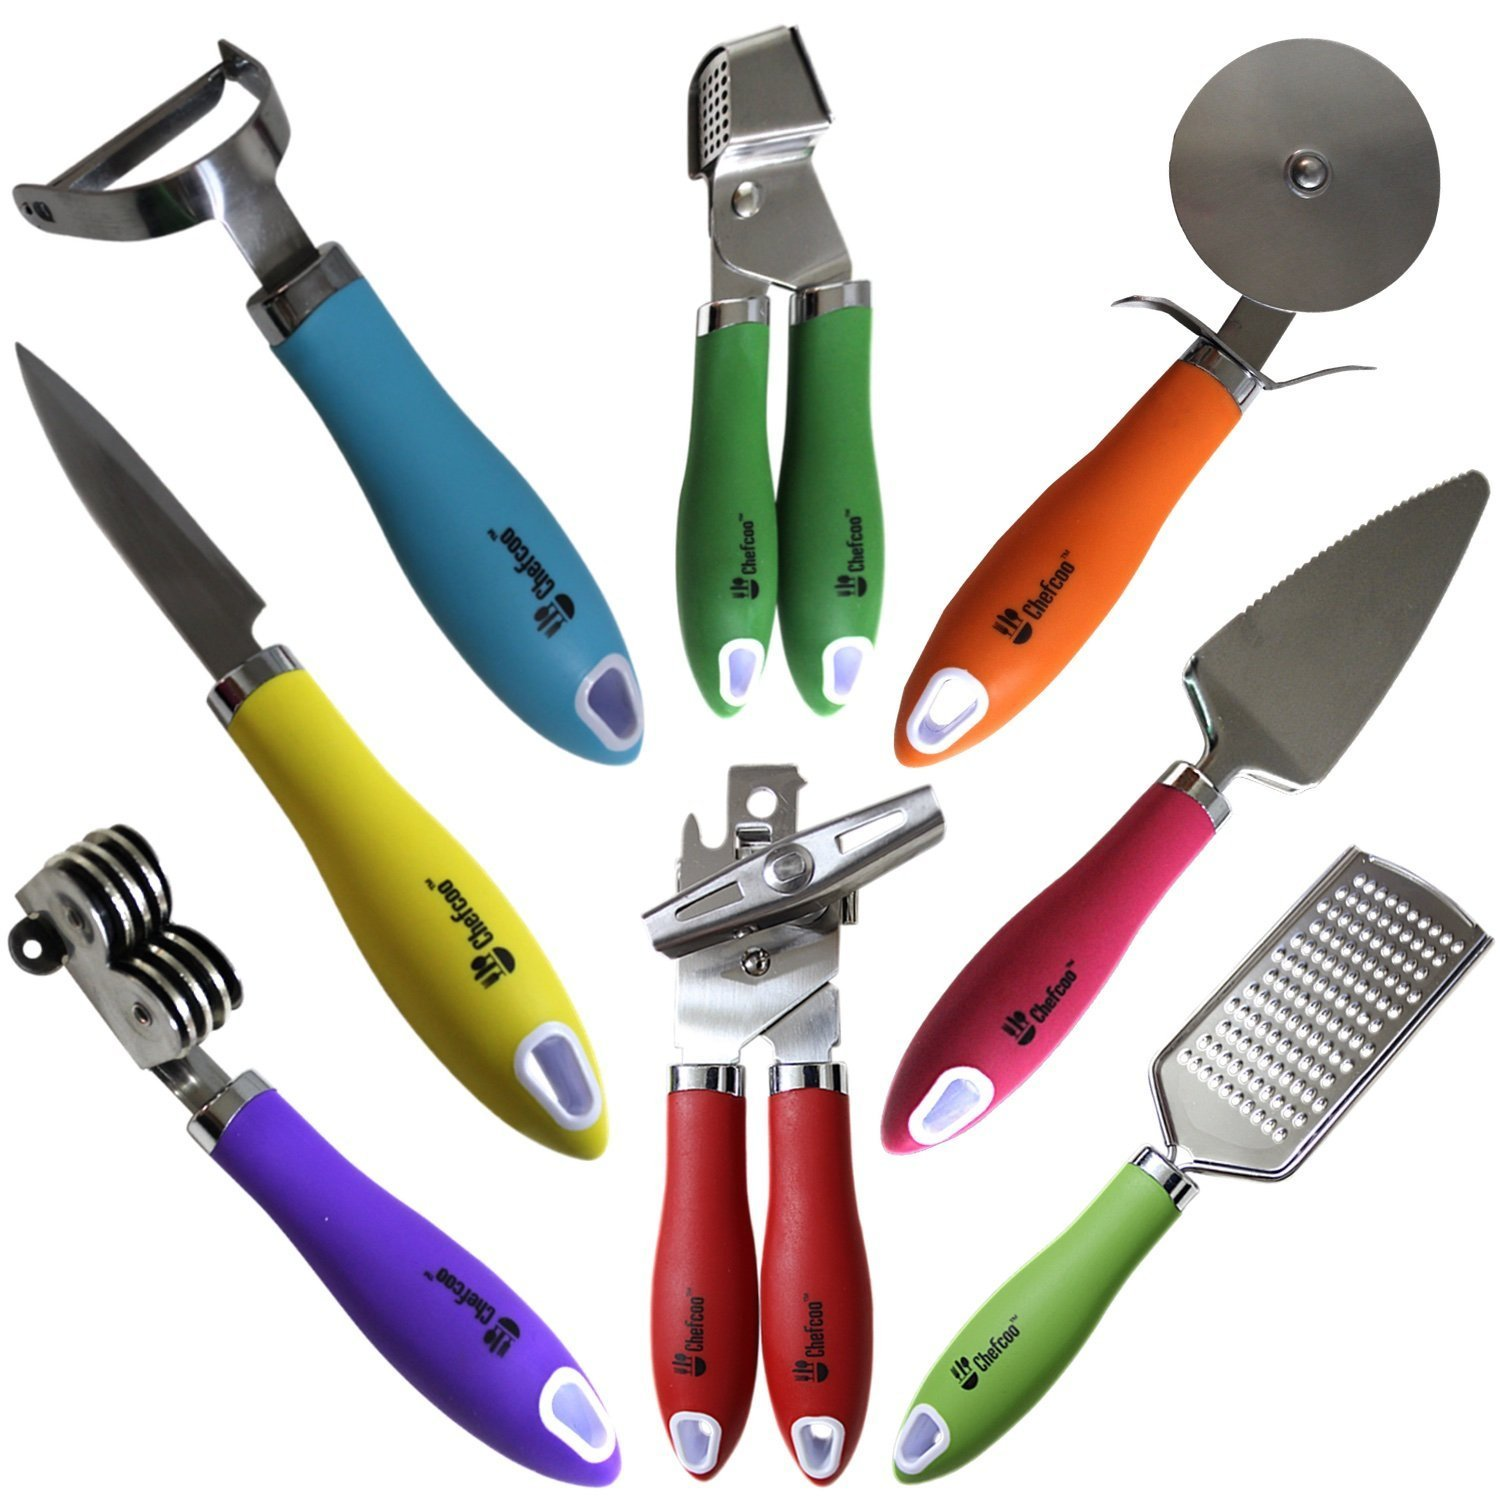 8 Pieces Kitchen Gadget Tools Set by Chefcoo™ - Stainless-Steel Utensils  Chef Cooking Set - Peeler, Knife, Pie Server, Can Opener, Pizza Cutter, ...